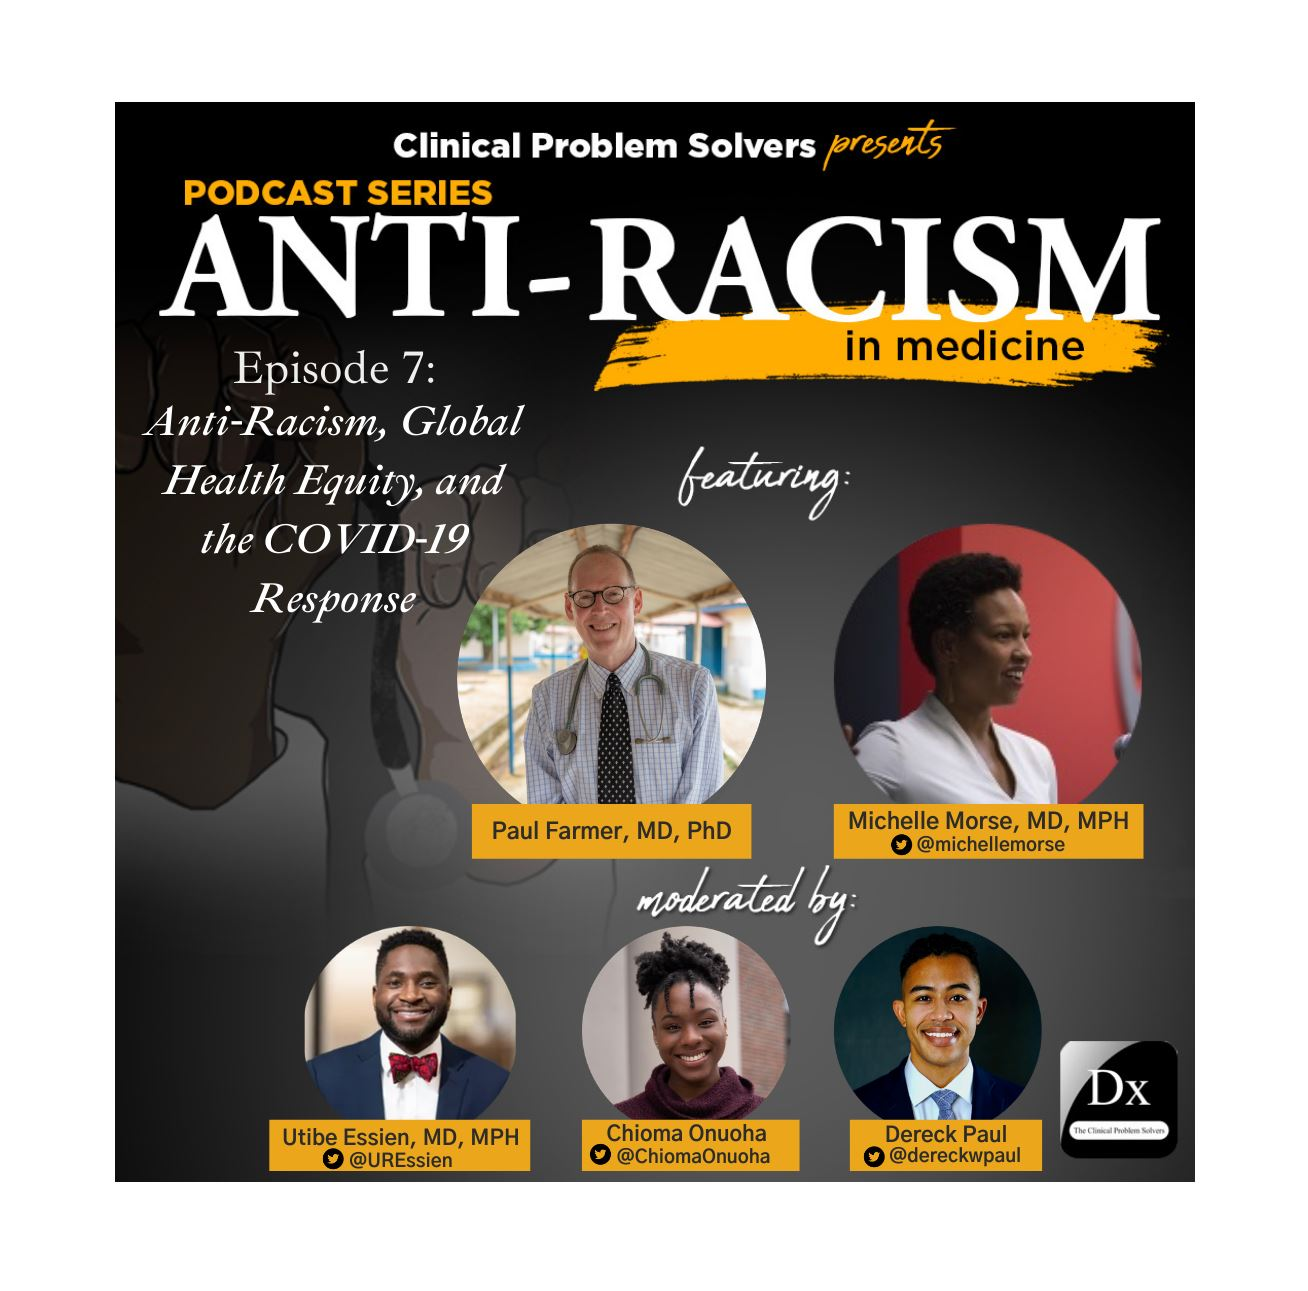 Episode 169: Antiracism in Medicine Series – Episode 7 – Antiracism, Global Health Equity, and the COVID-19 Response